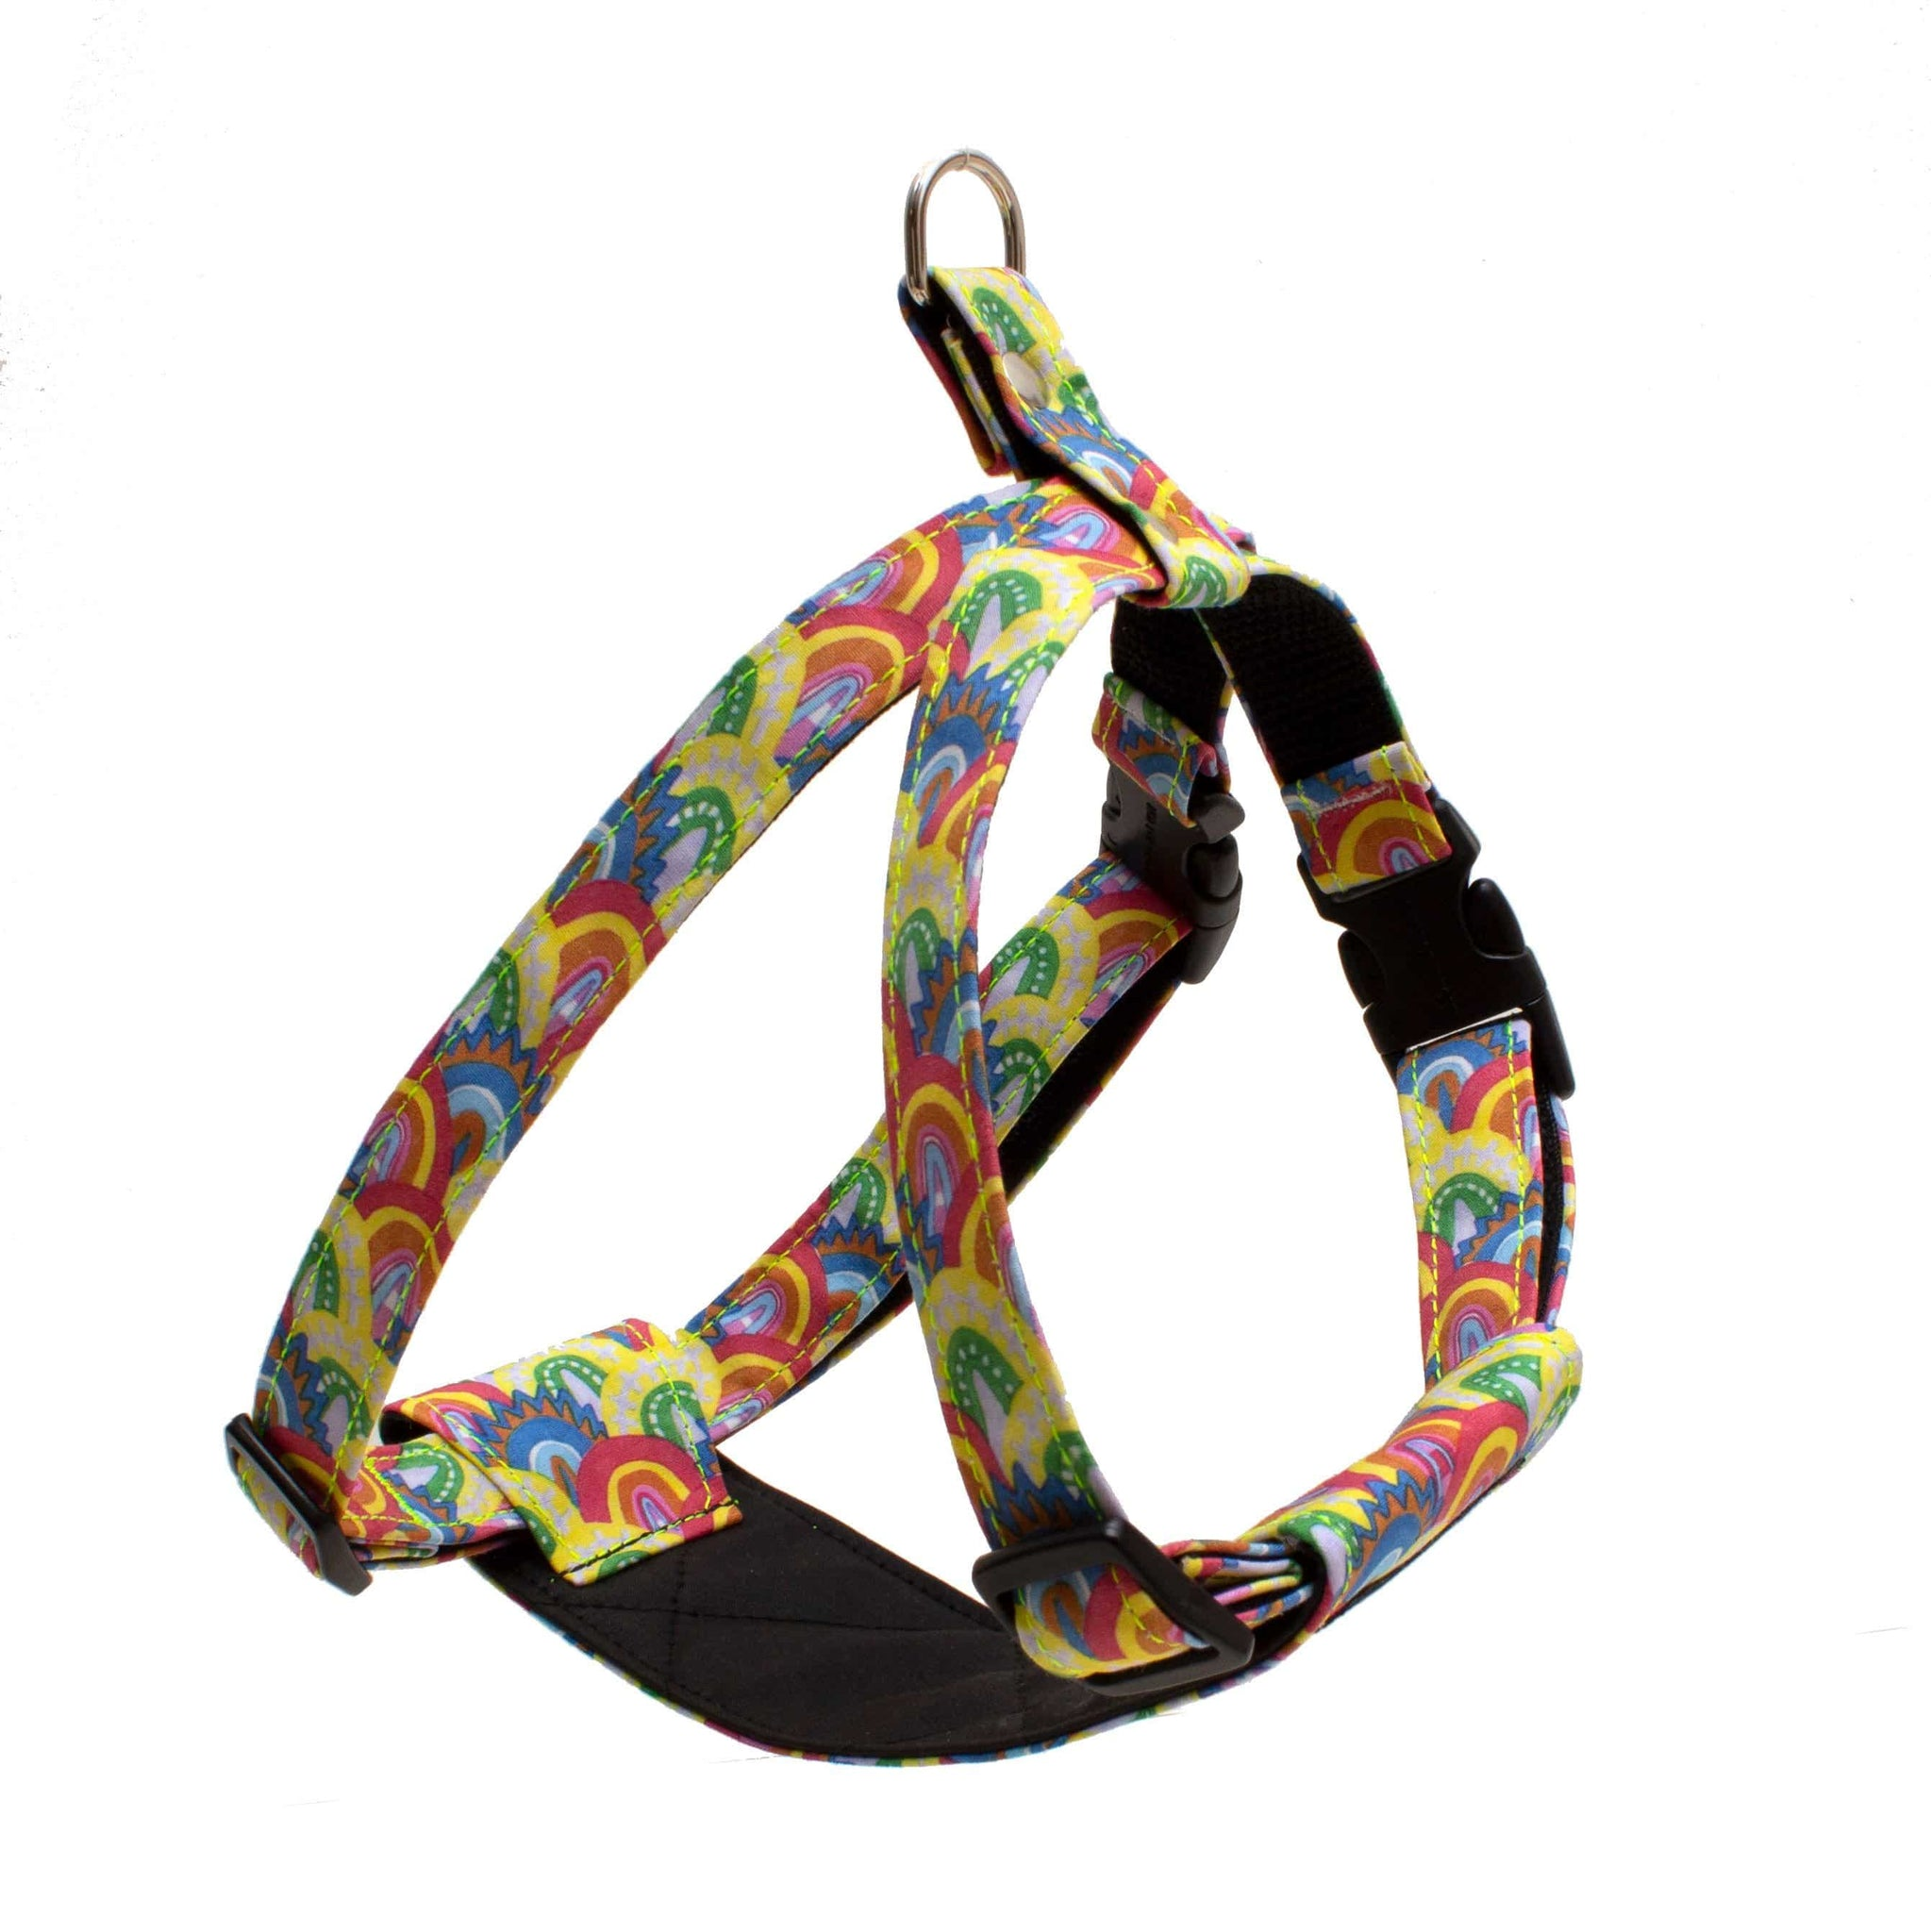 Over The Rainbow Harness - Holler Brighton